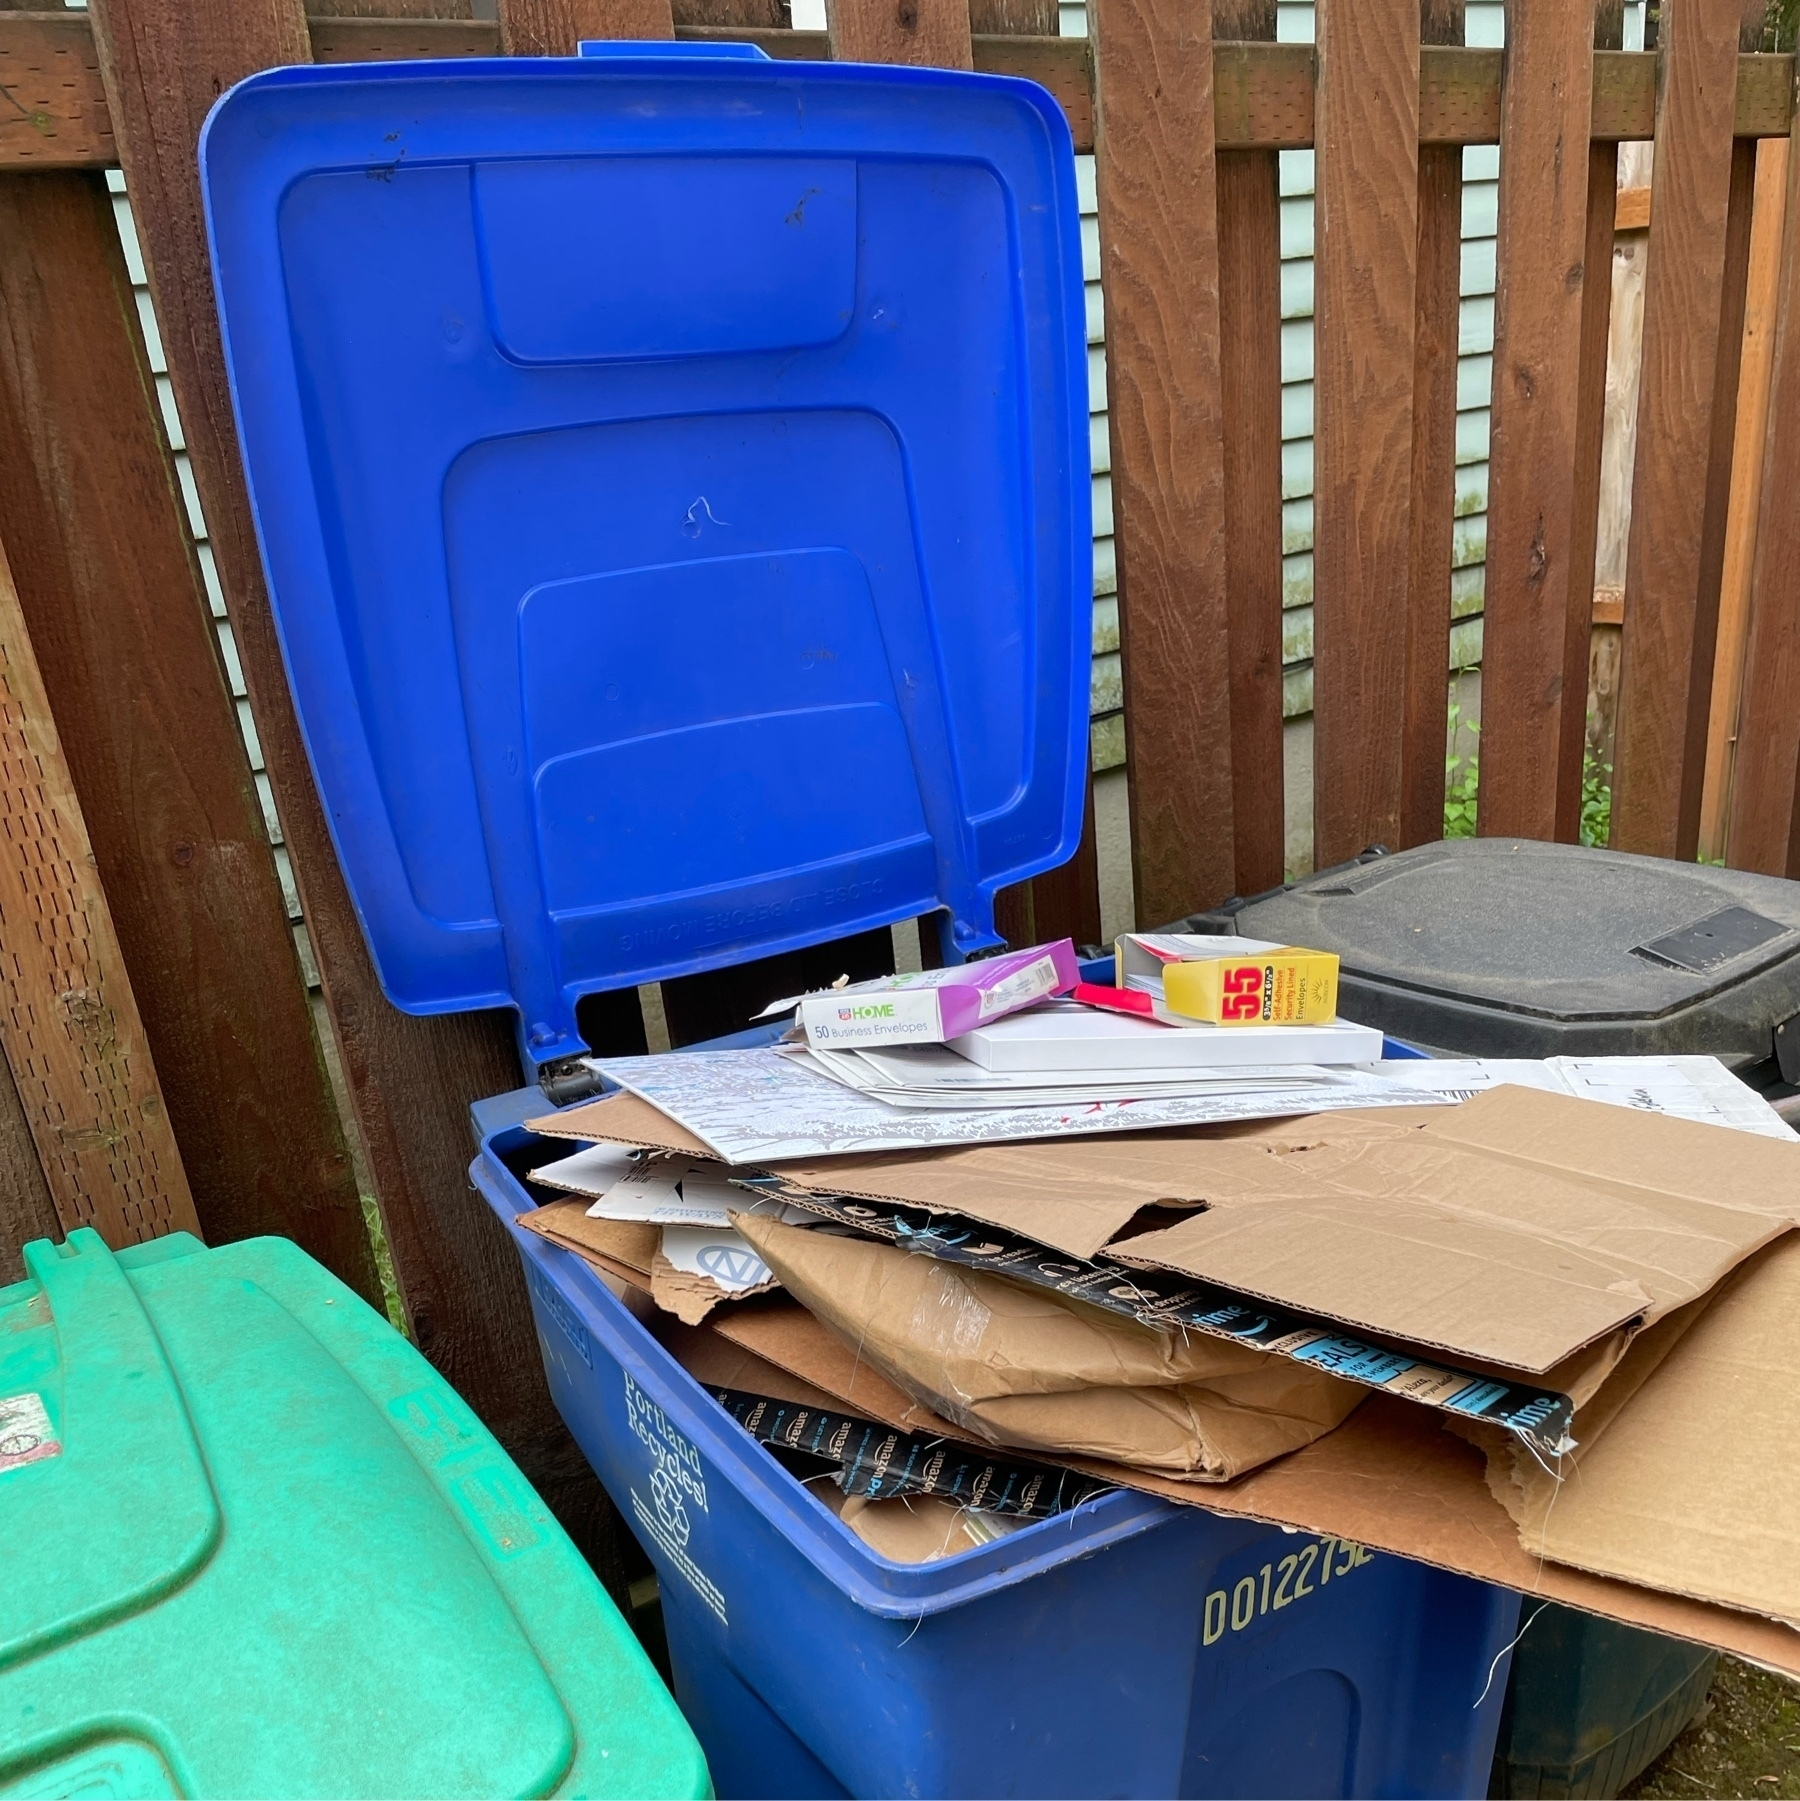 Blue recycling bin filled with paper and cardboard.